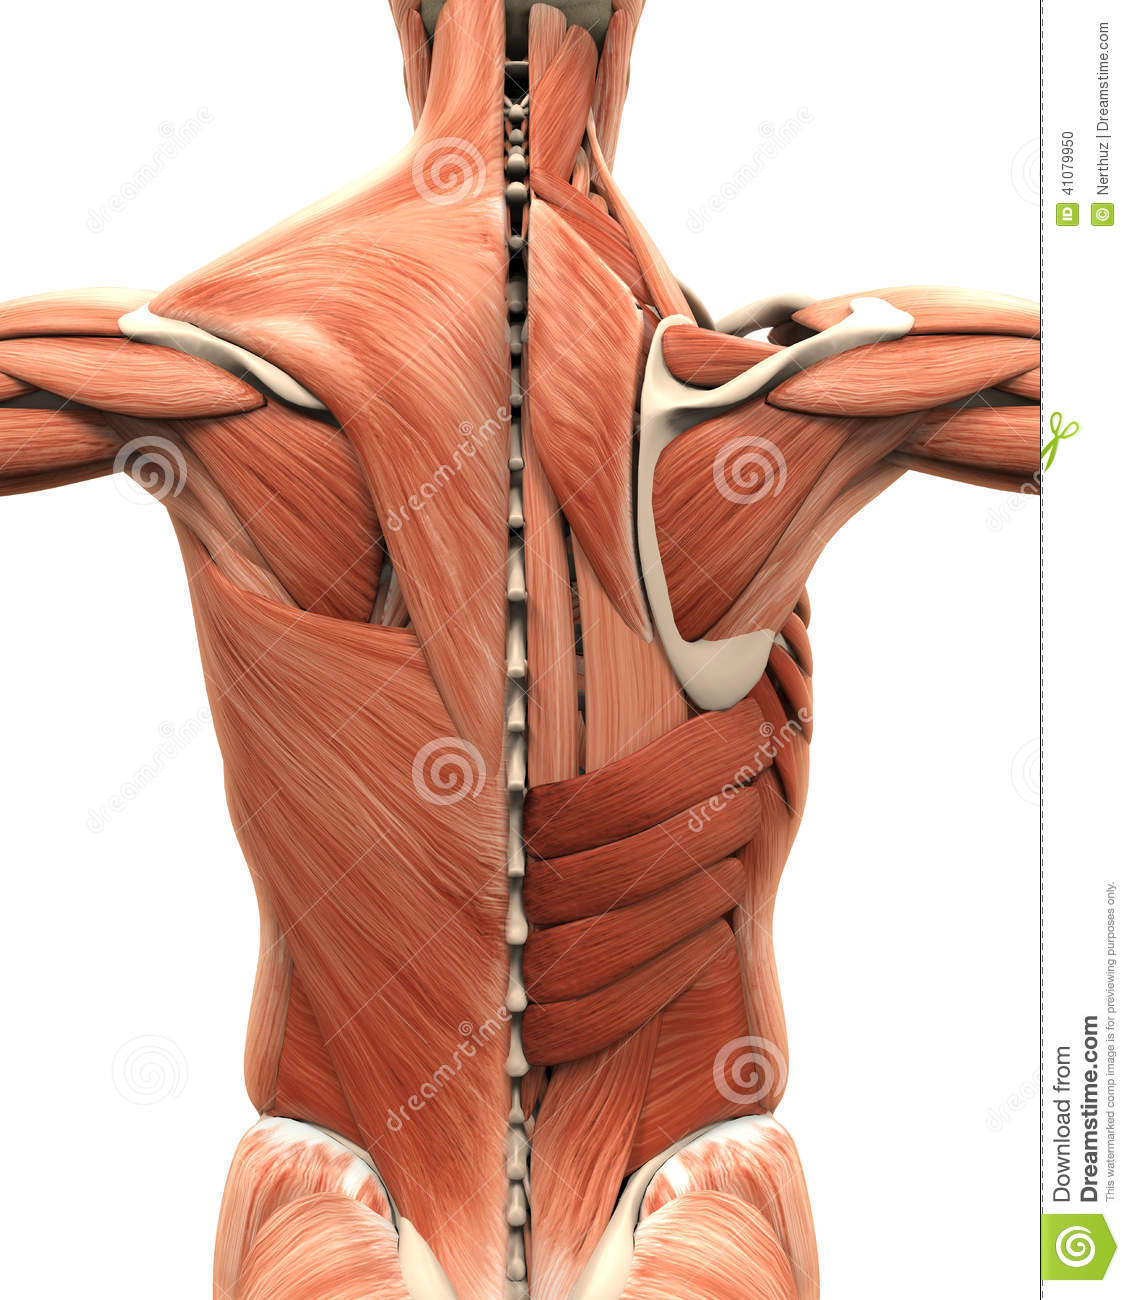 Muscular Anatomy Of The Back Stock Illustration - Illustration of ...